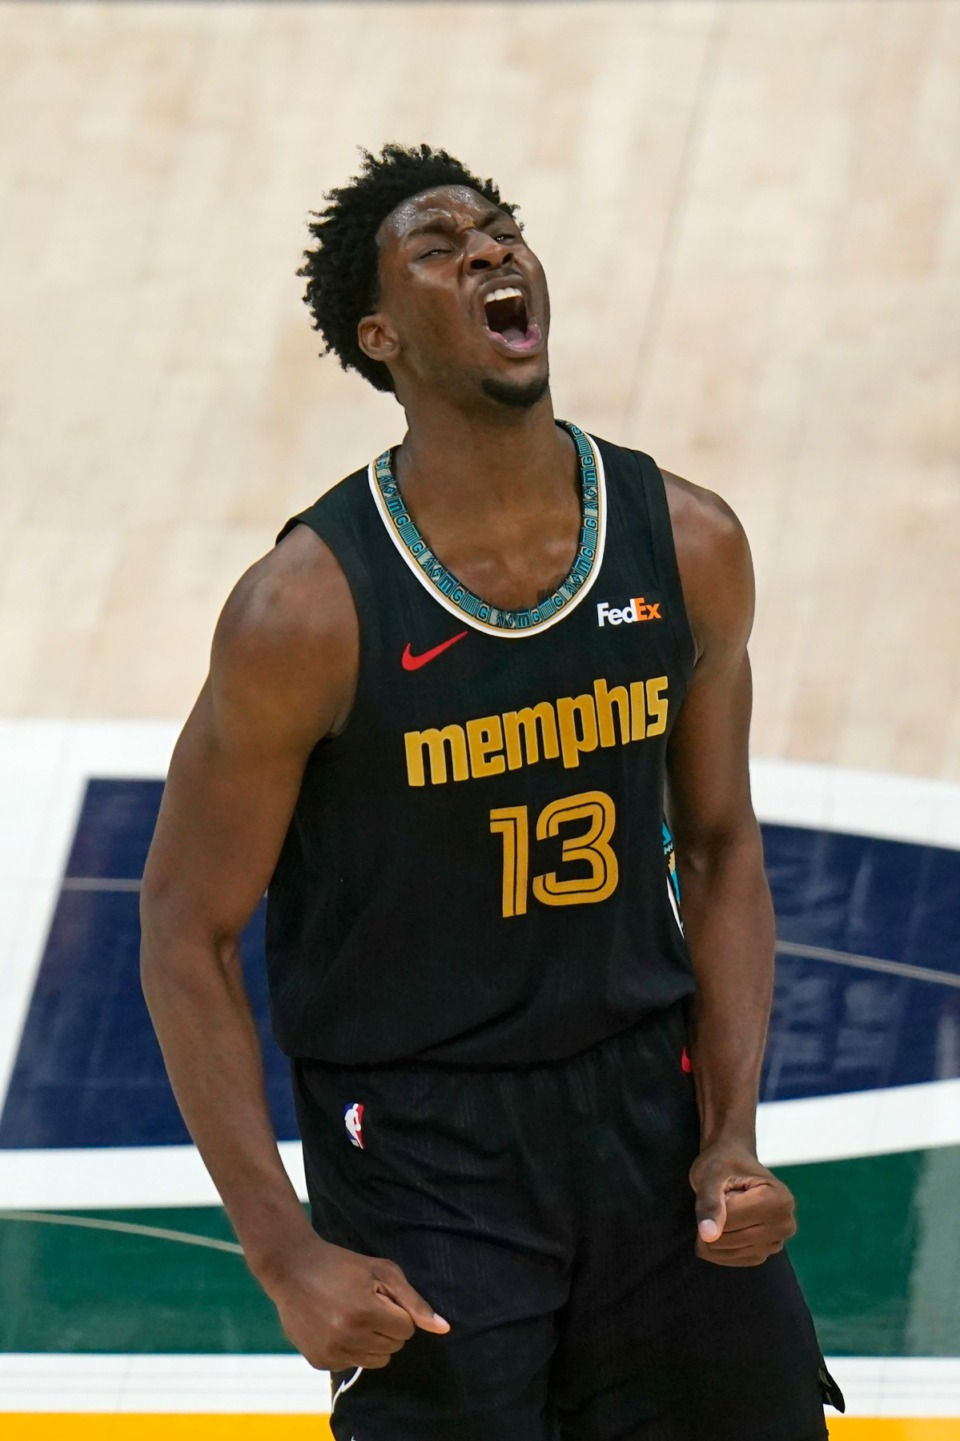 <strong>Memphis Grizzlies forward Jaren Jackson Jr. (13) celebrates after scoring against the Utah Jazz during the second half of Game 1 of their NBA basketball first-round playoff series Sunday, May 23, 2021, in Salt Lake City.</strong> (Rick Bowmer/AP)